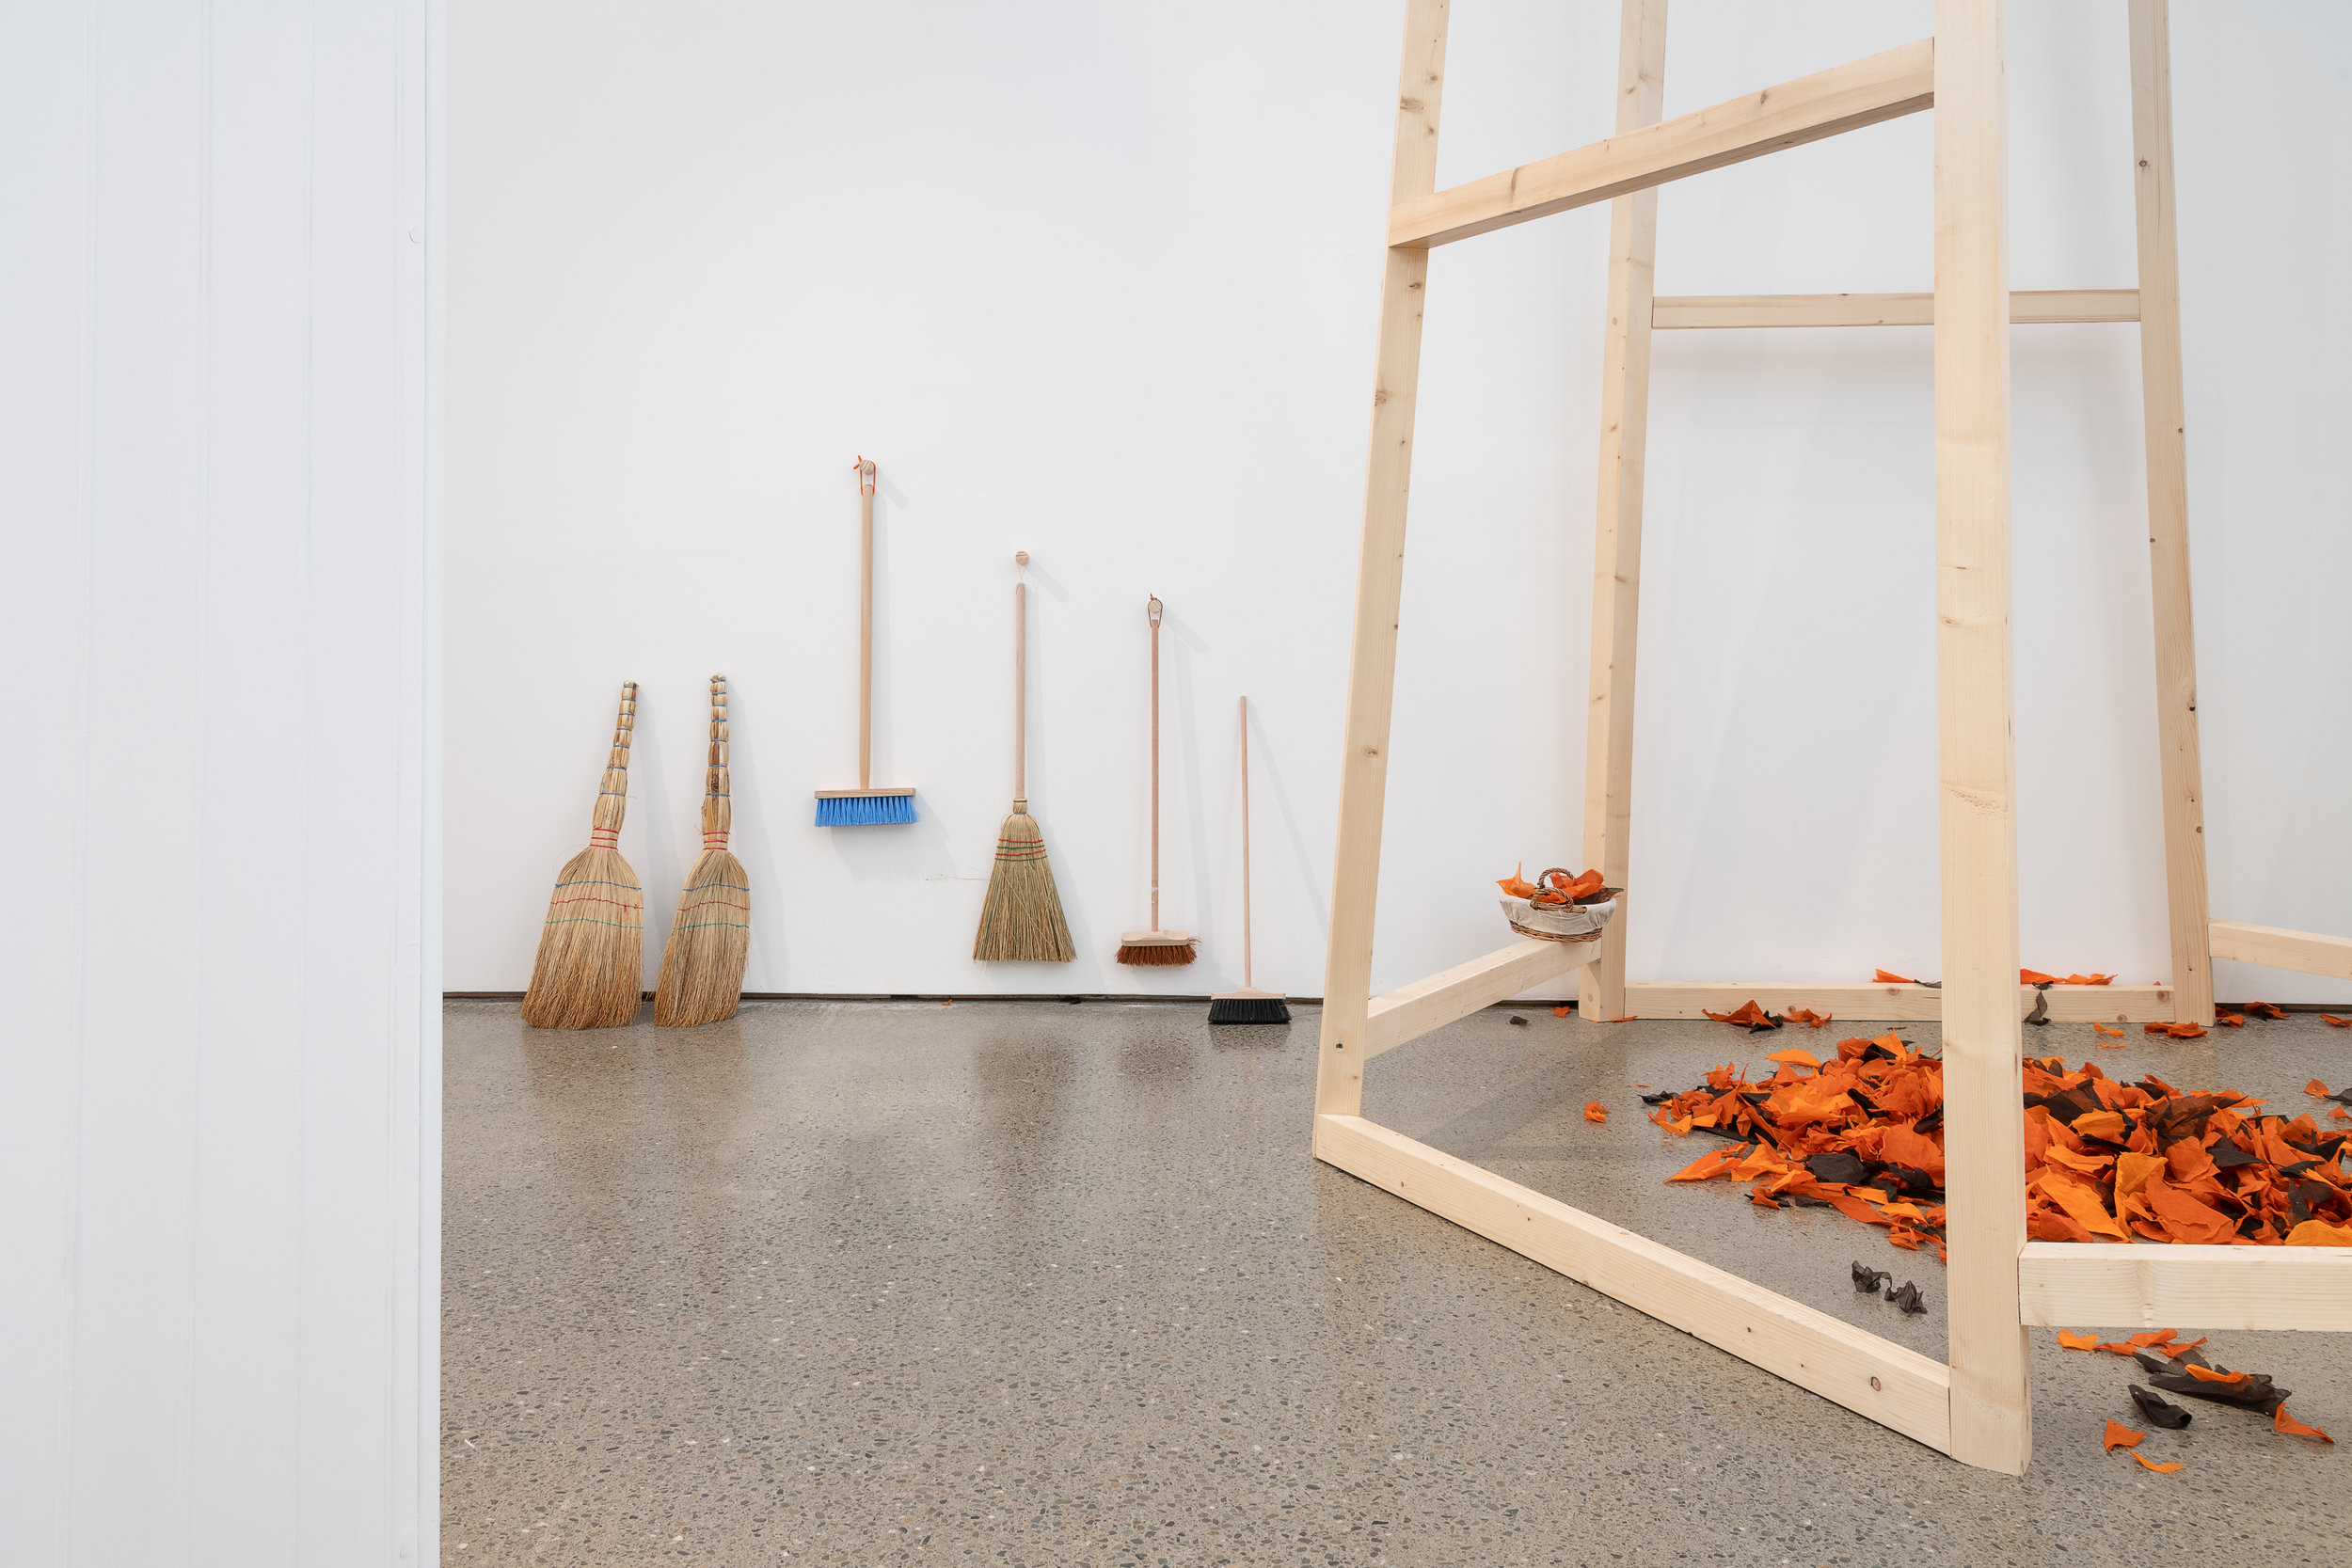 Mobile Element - Organdy leaves, brushes and brooms for sweeping  Caoimhe Kilfeather Photo by Jed Niezgoda